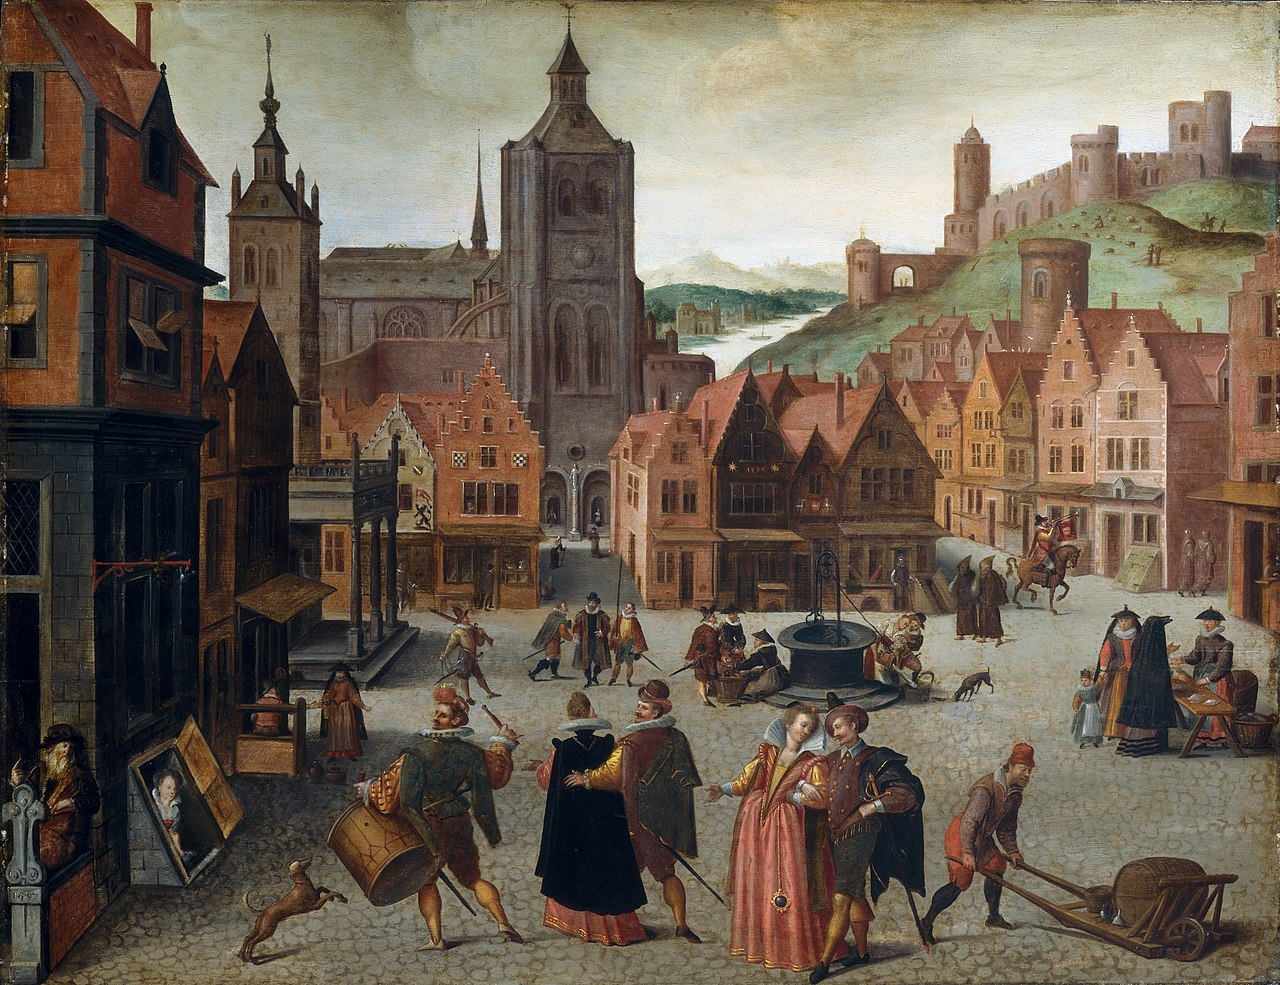 https://upload.wikimedia.org/wikipedia/commons/thumb/d/dc/The_Marketplace_in_Bergen_op_Zoom_E11381.jpg/1280px-The_Marketplace_in_Bergen_op_Zoom_E11381.jpg